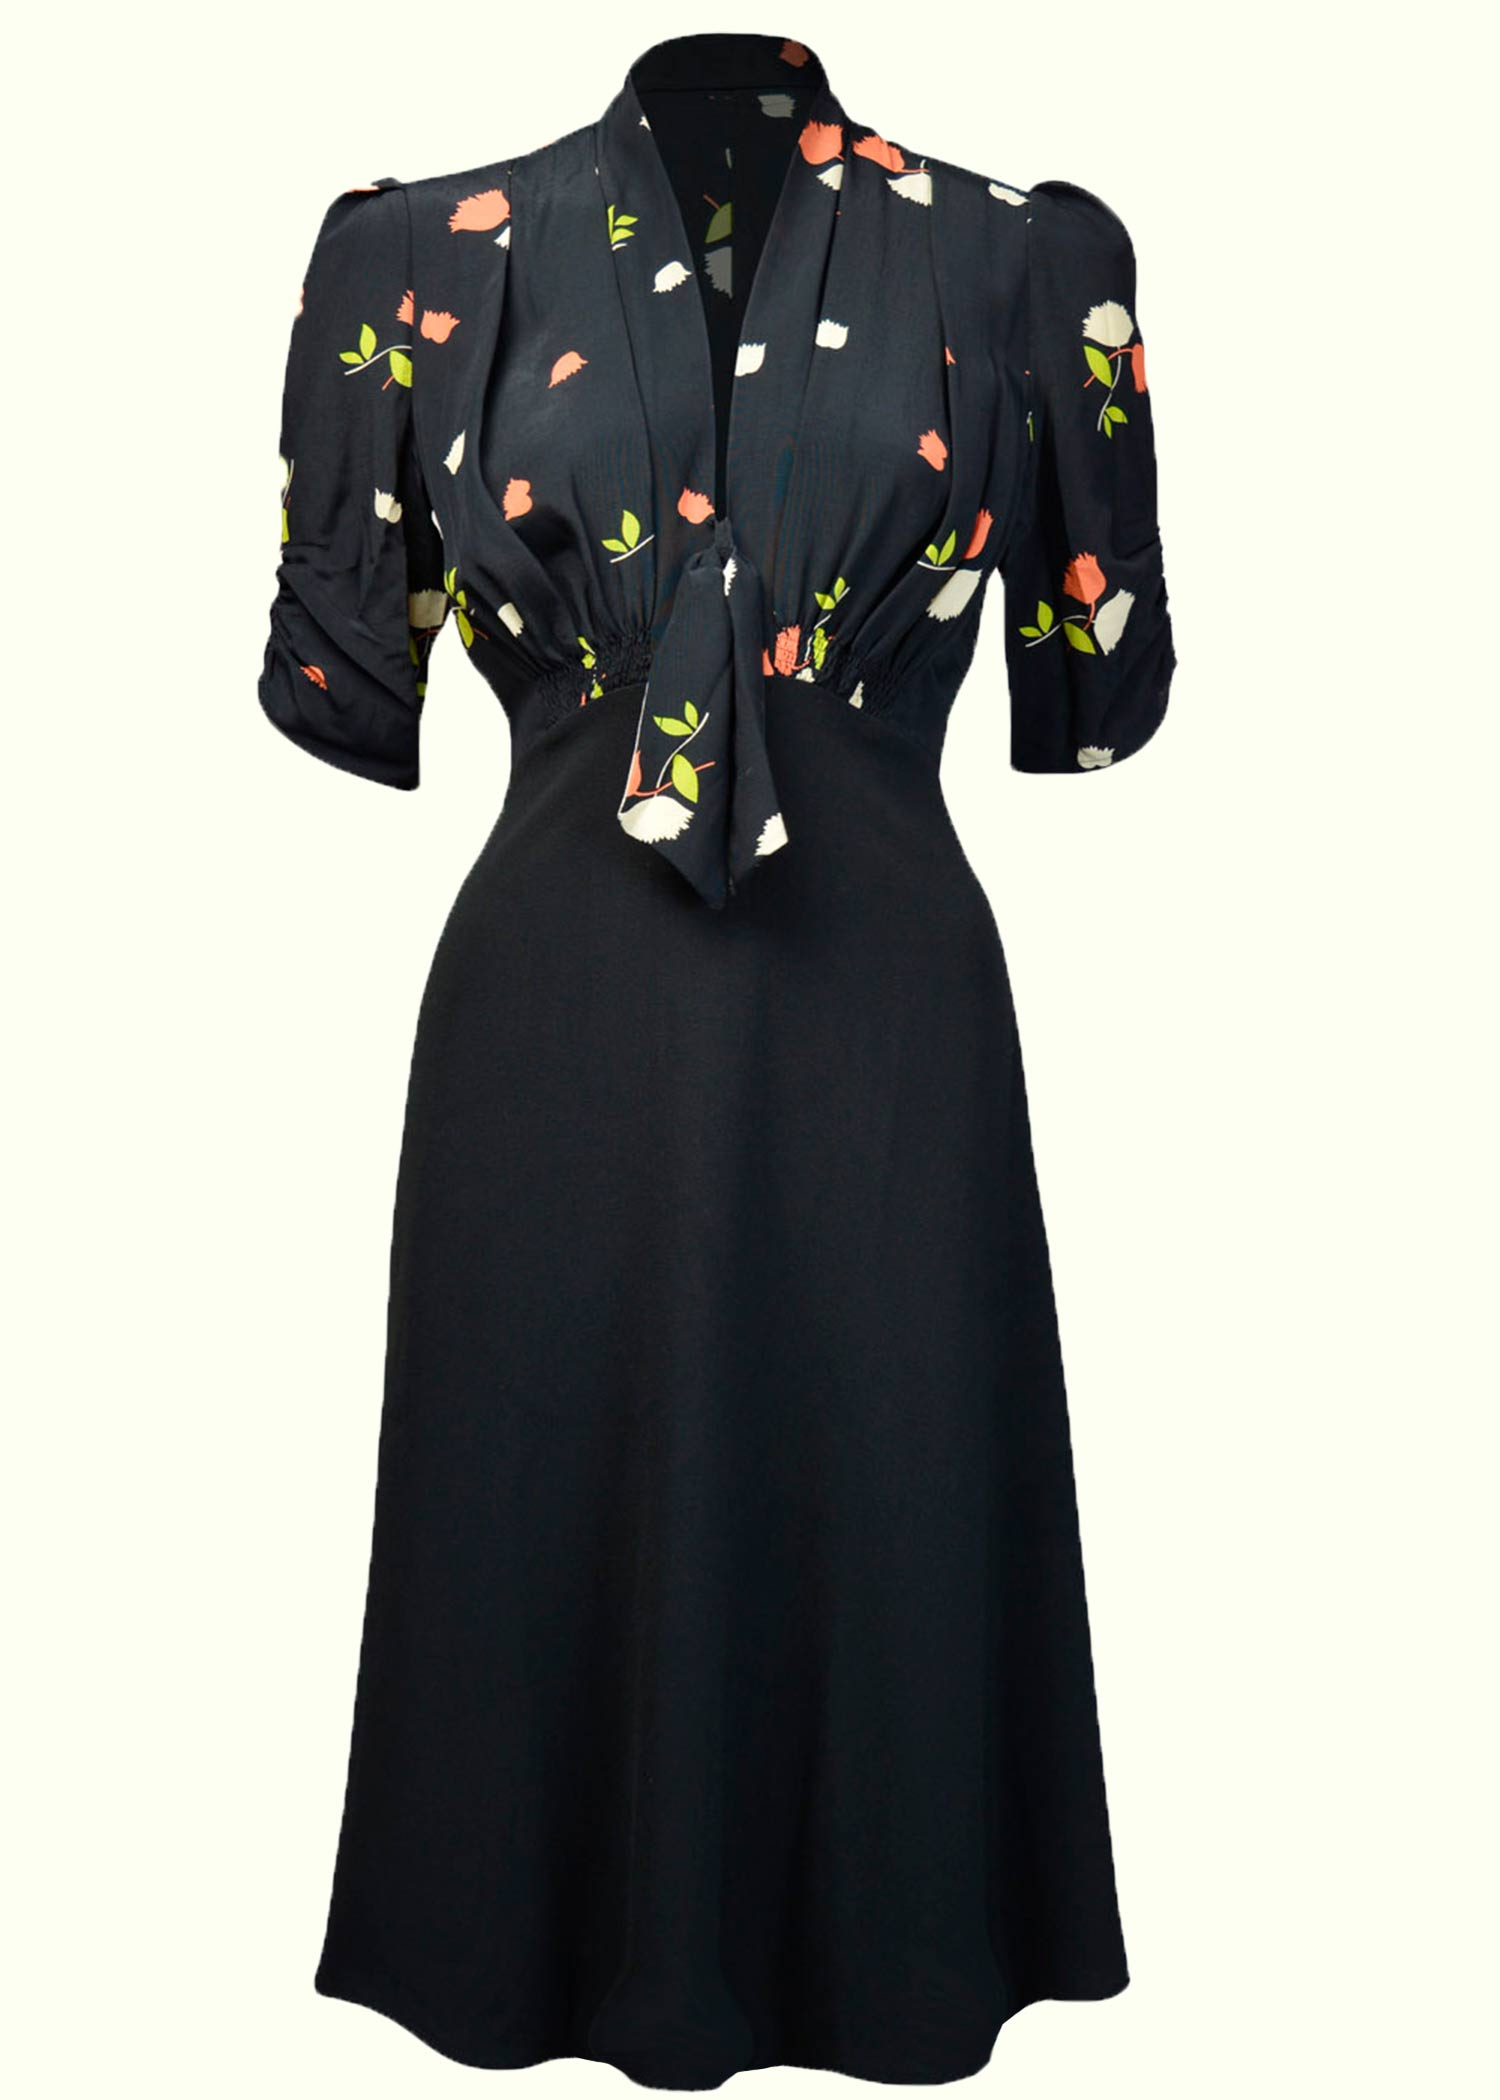 Jitterbug vintage style dress in 1930s style